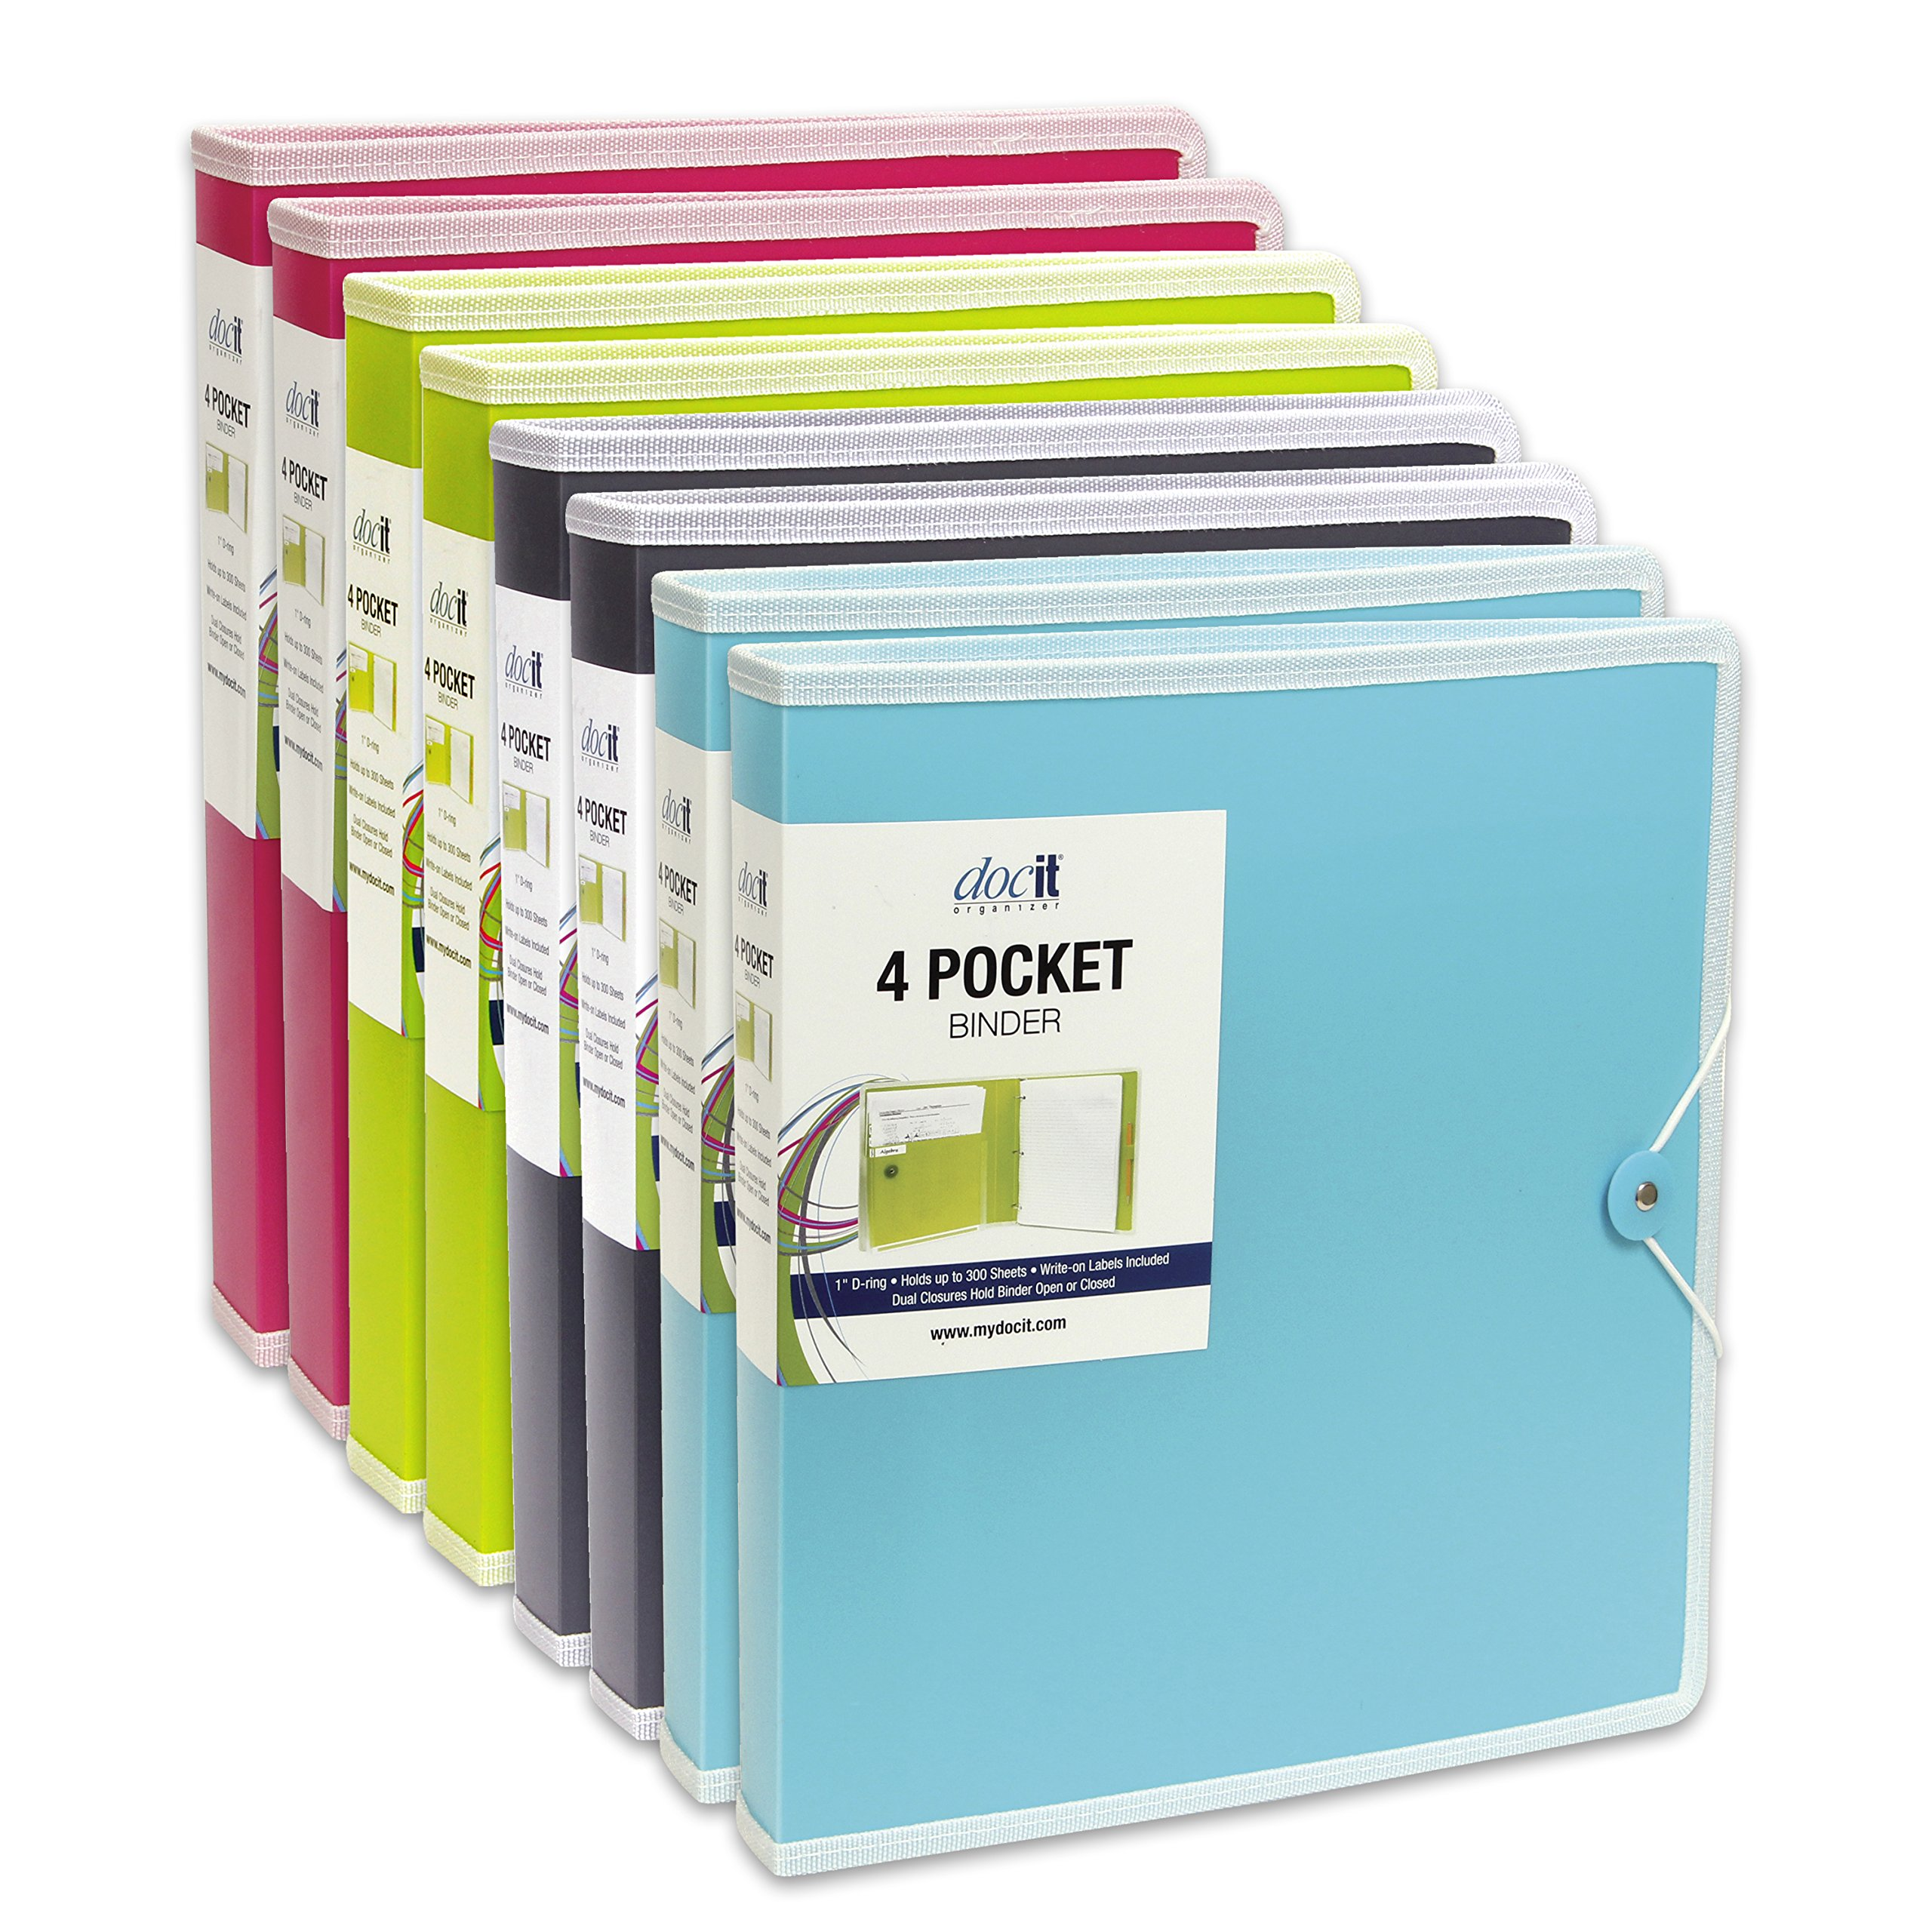 DocIt 4 Pocket Binder, Multi Pocket Folder and 1-inch 3 Ring Binder, Perfect for School, Office and Project Organization, Holds 300 Letter Size Papers, 8 Pack of Assorted Colors (00939)